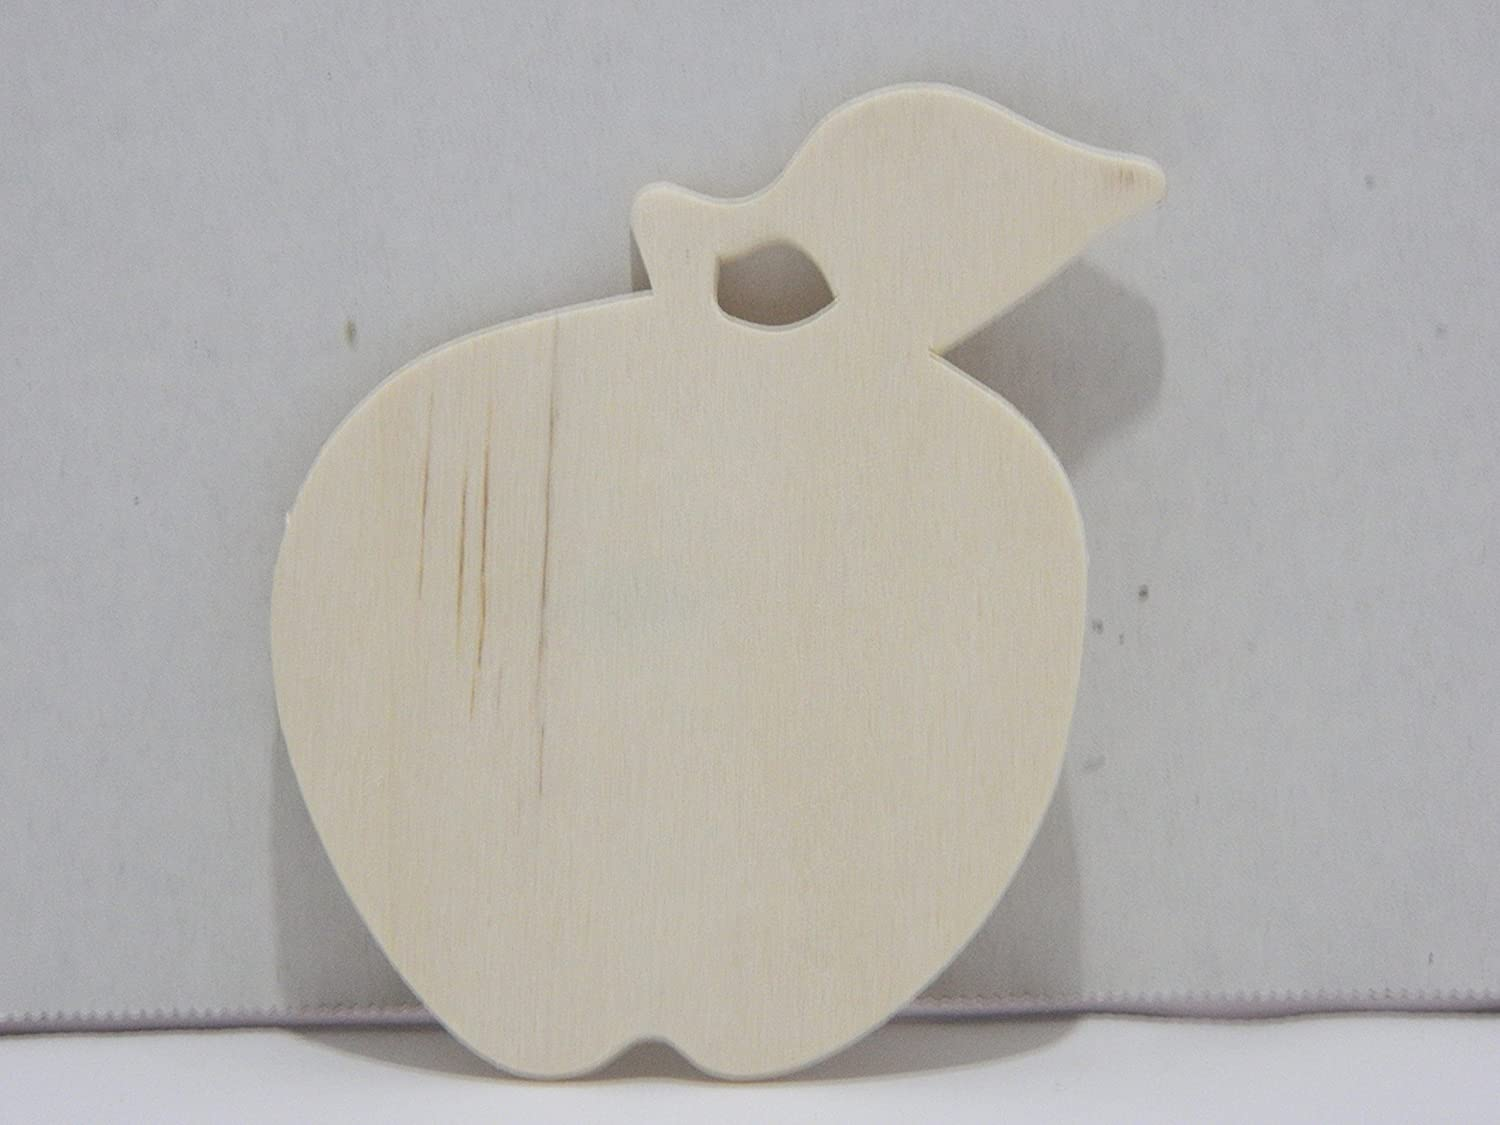 Package of 12 Unfinished Wood Cutouts for Painting and Crafting (Wood Apple)